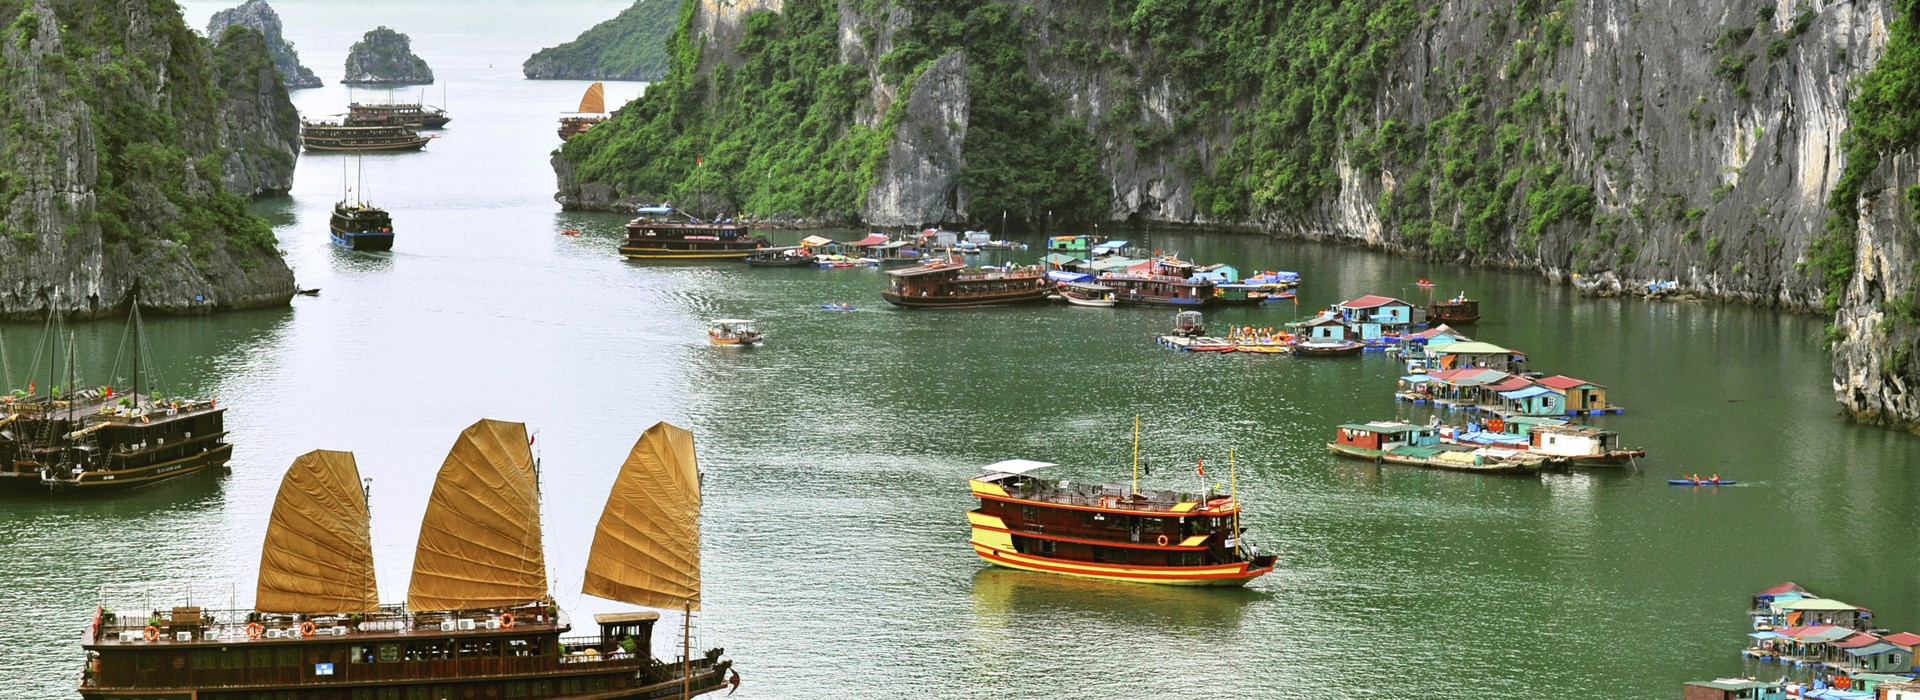 halong vacances solo vietnam cambodge